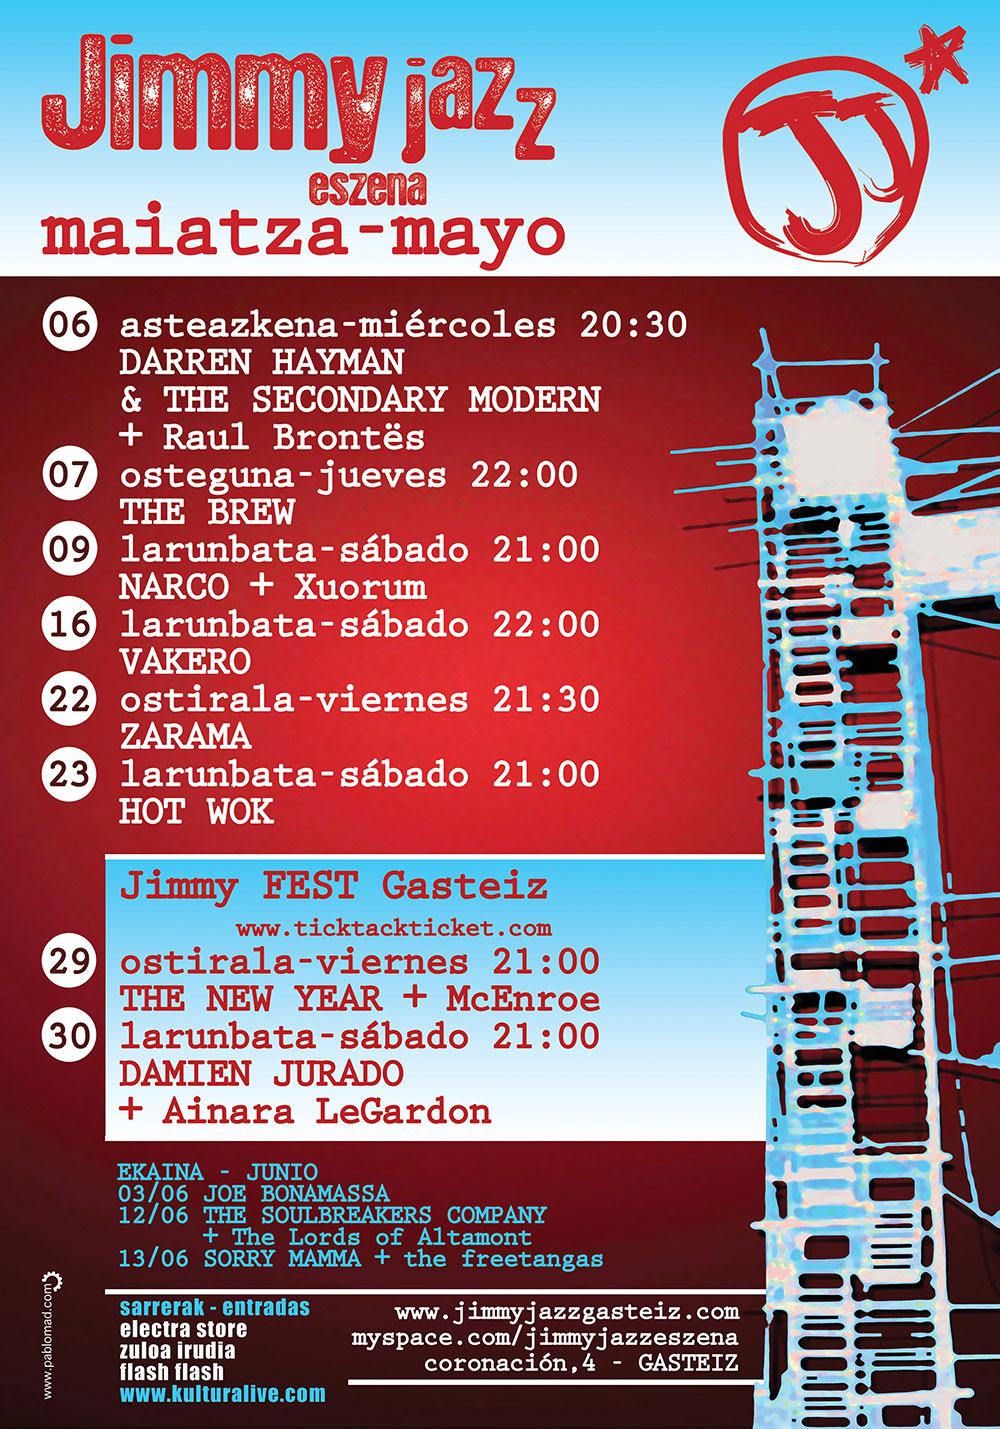 06_cartel_mayo_09 jimmy jazz pablomad